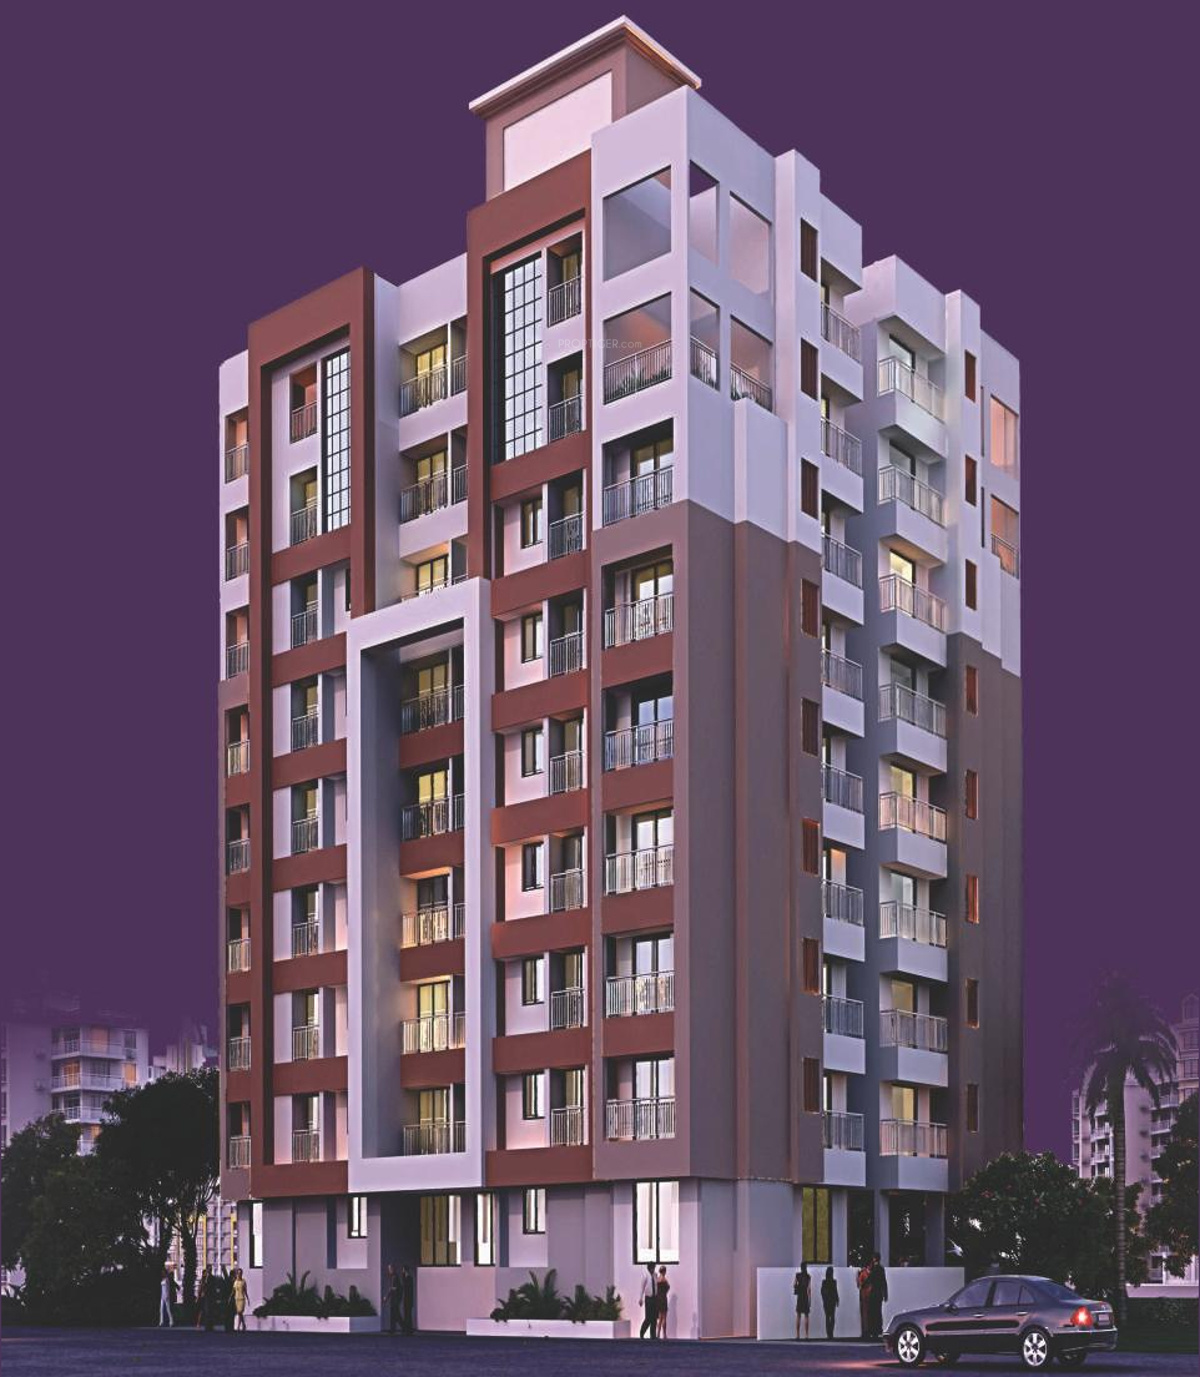 949 Sq Ft 2 BHK 2T Apartment For Sale In JVM Spaces Garden